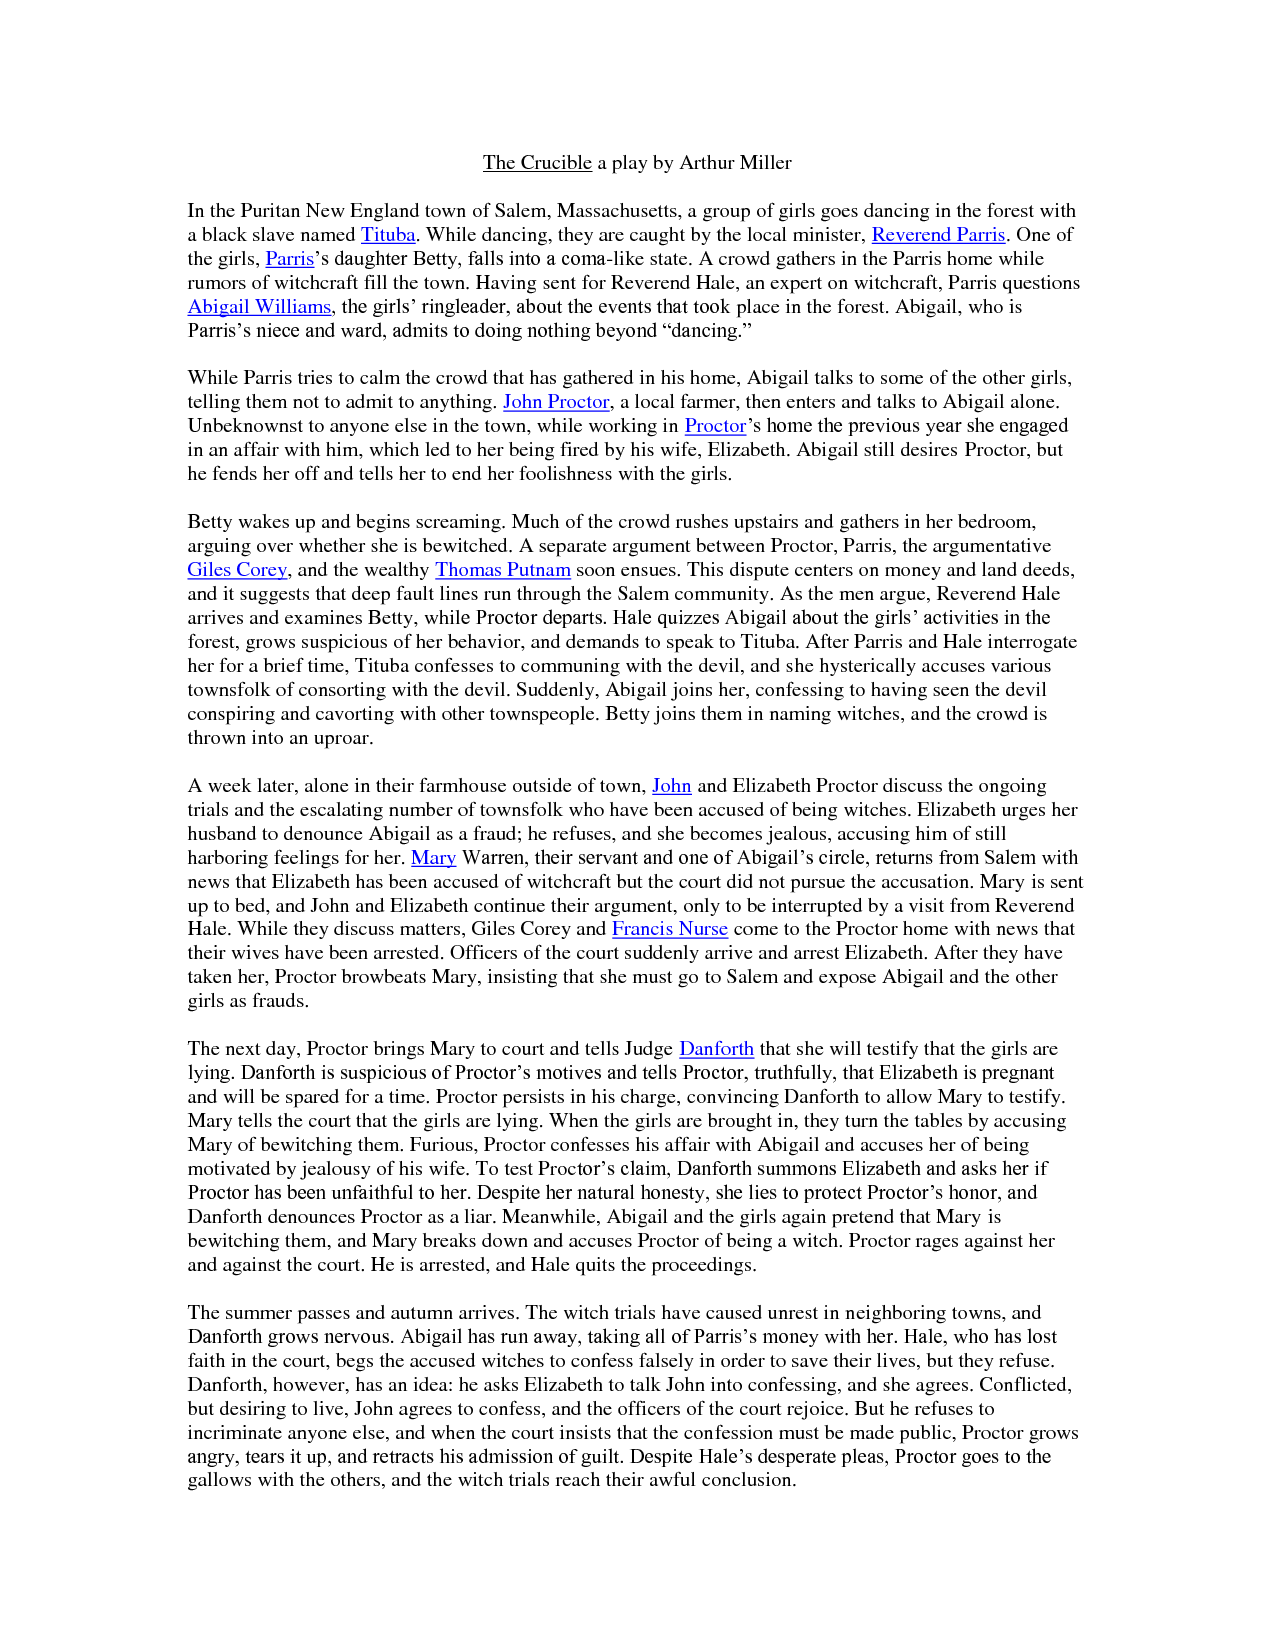 john proctor essay summary on john proctor from the crucible john proctor important quotes quotesgram